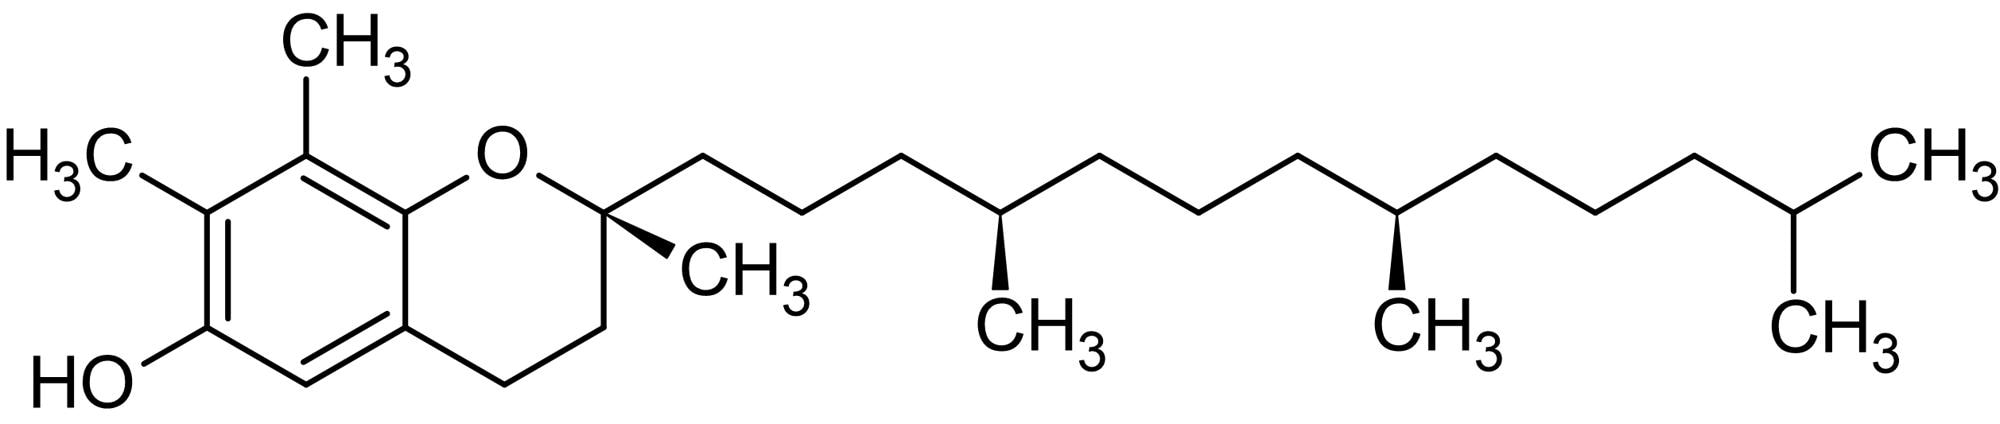 Chemical Structure - rac-gamma-Tocopherol (gamma-Tocopherol), Vitamin E isoform (ab143878)